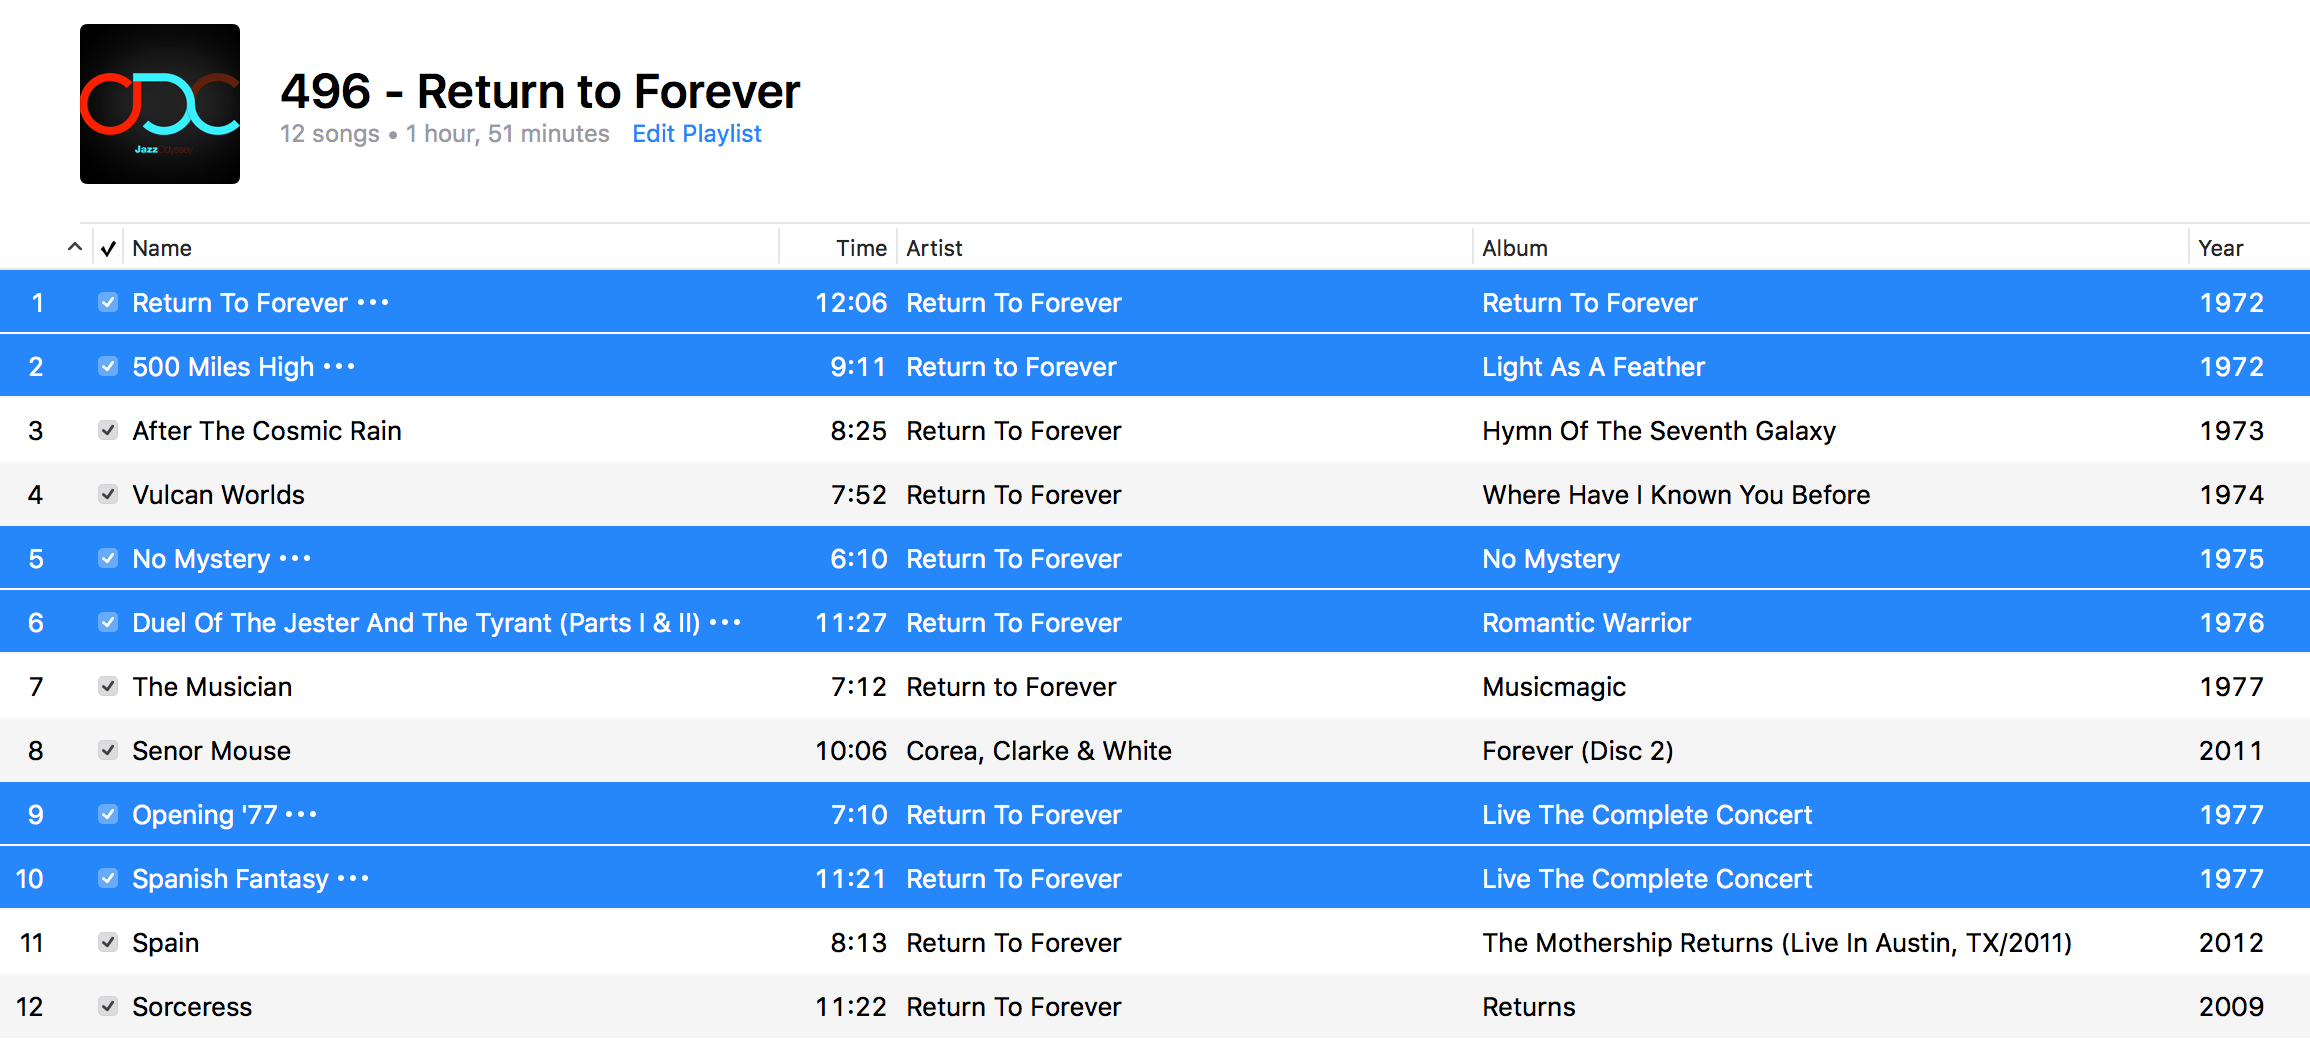 Jazz ODC #496 - Return To Forever - Playlist